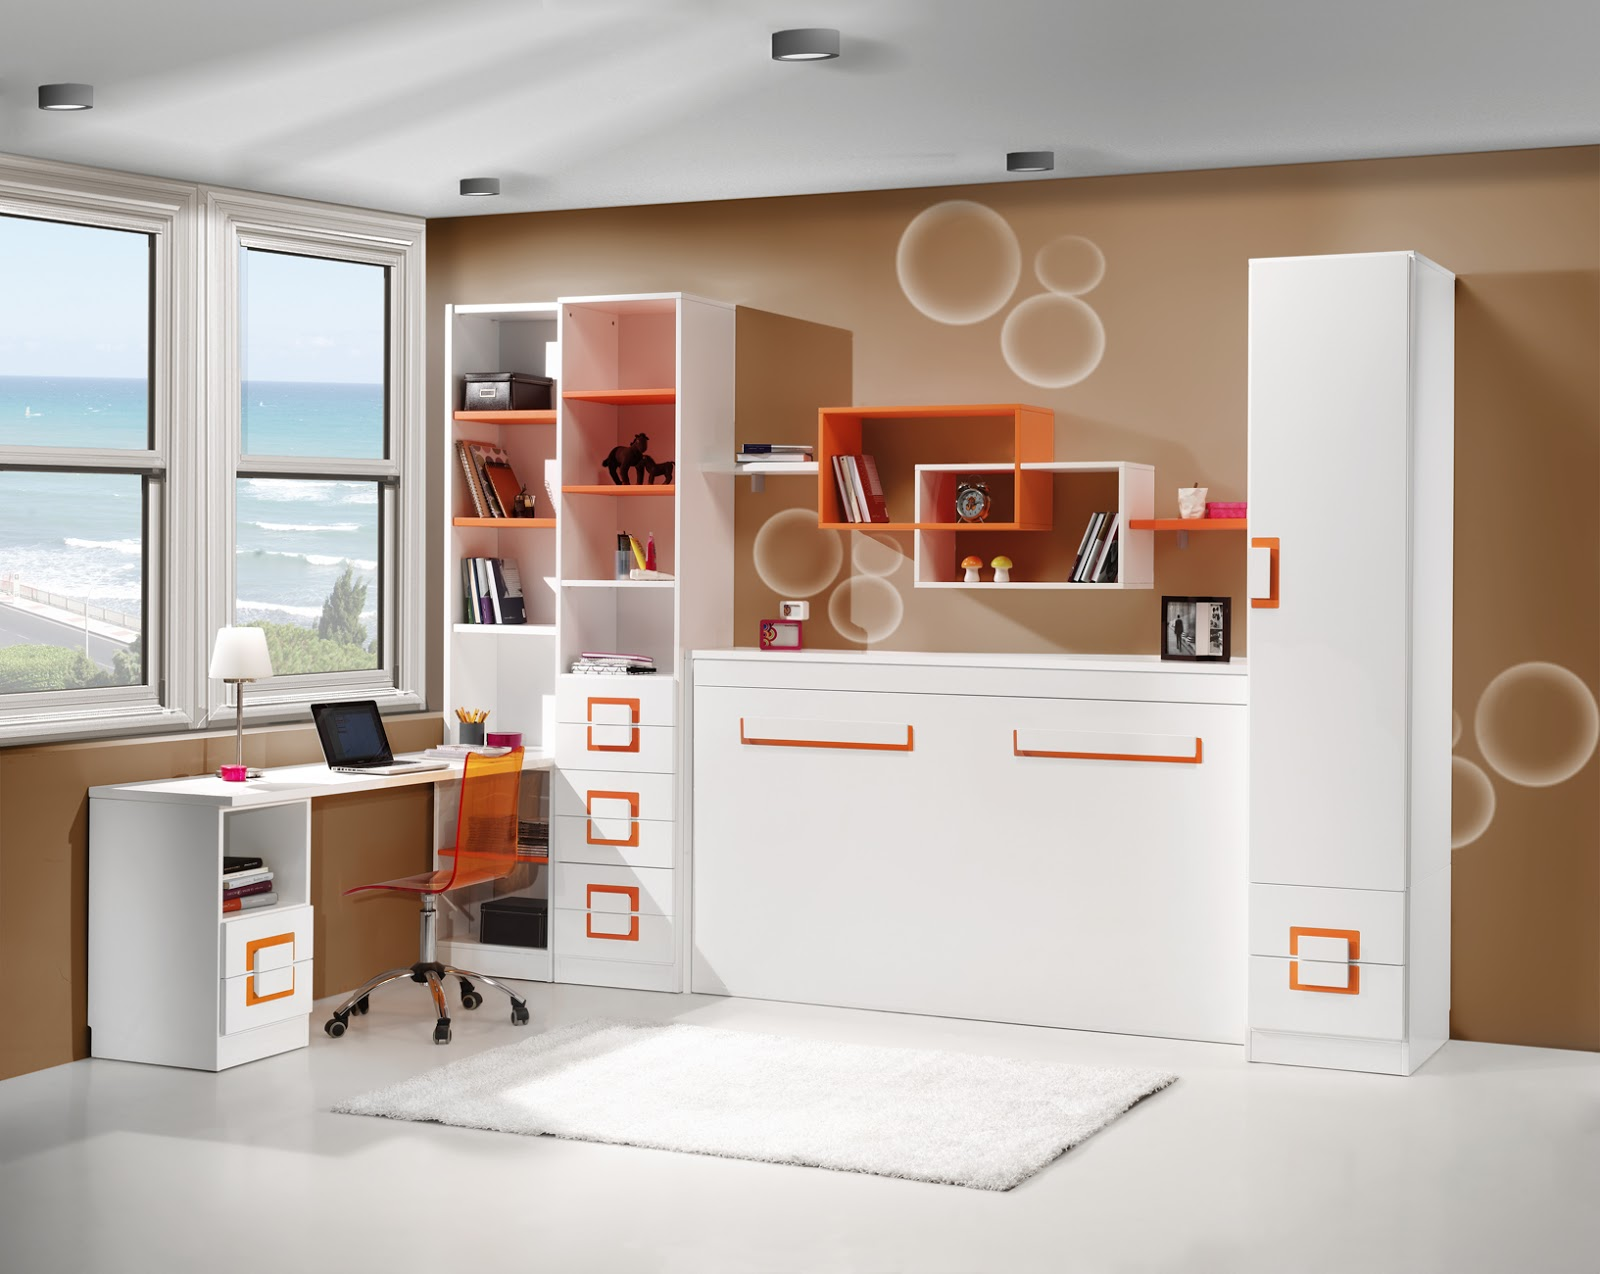 Soluciones para habitaciones peque as for Muebles abatibles juveniles